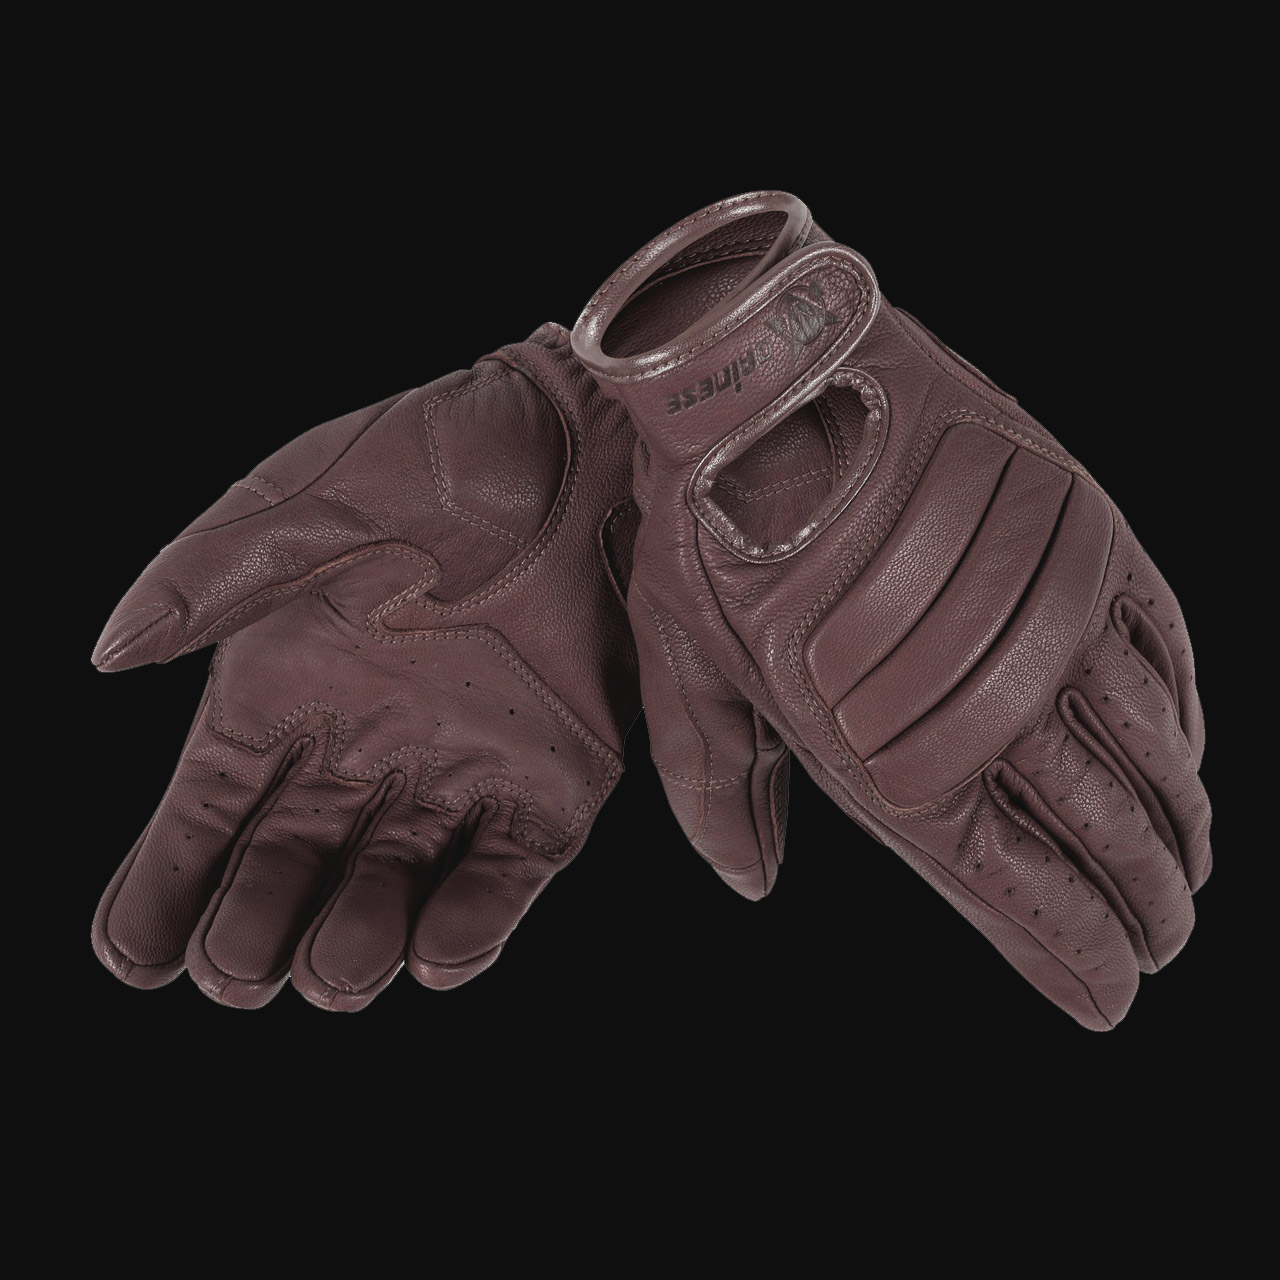 dainese-ellis-gloves-2